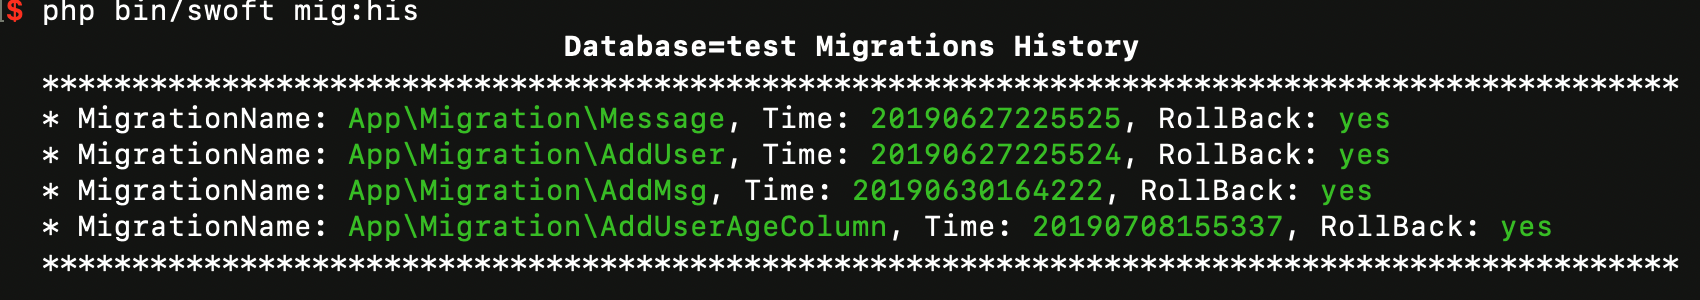 migrate:history